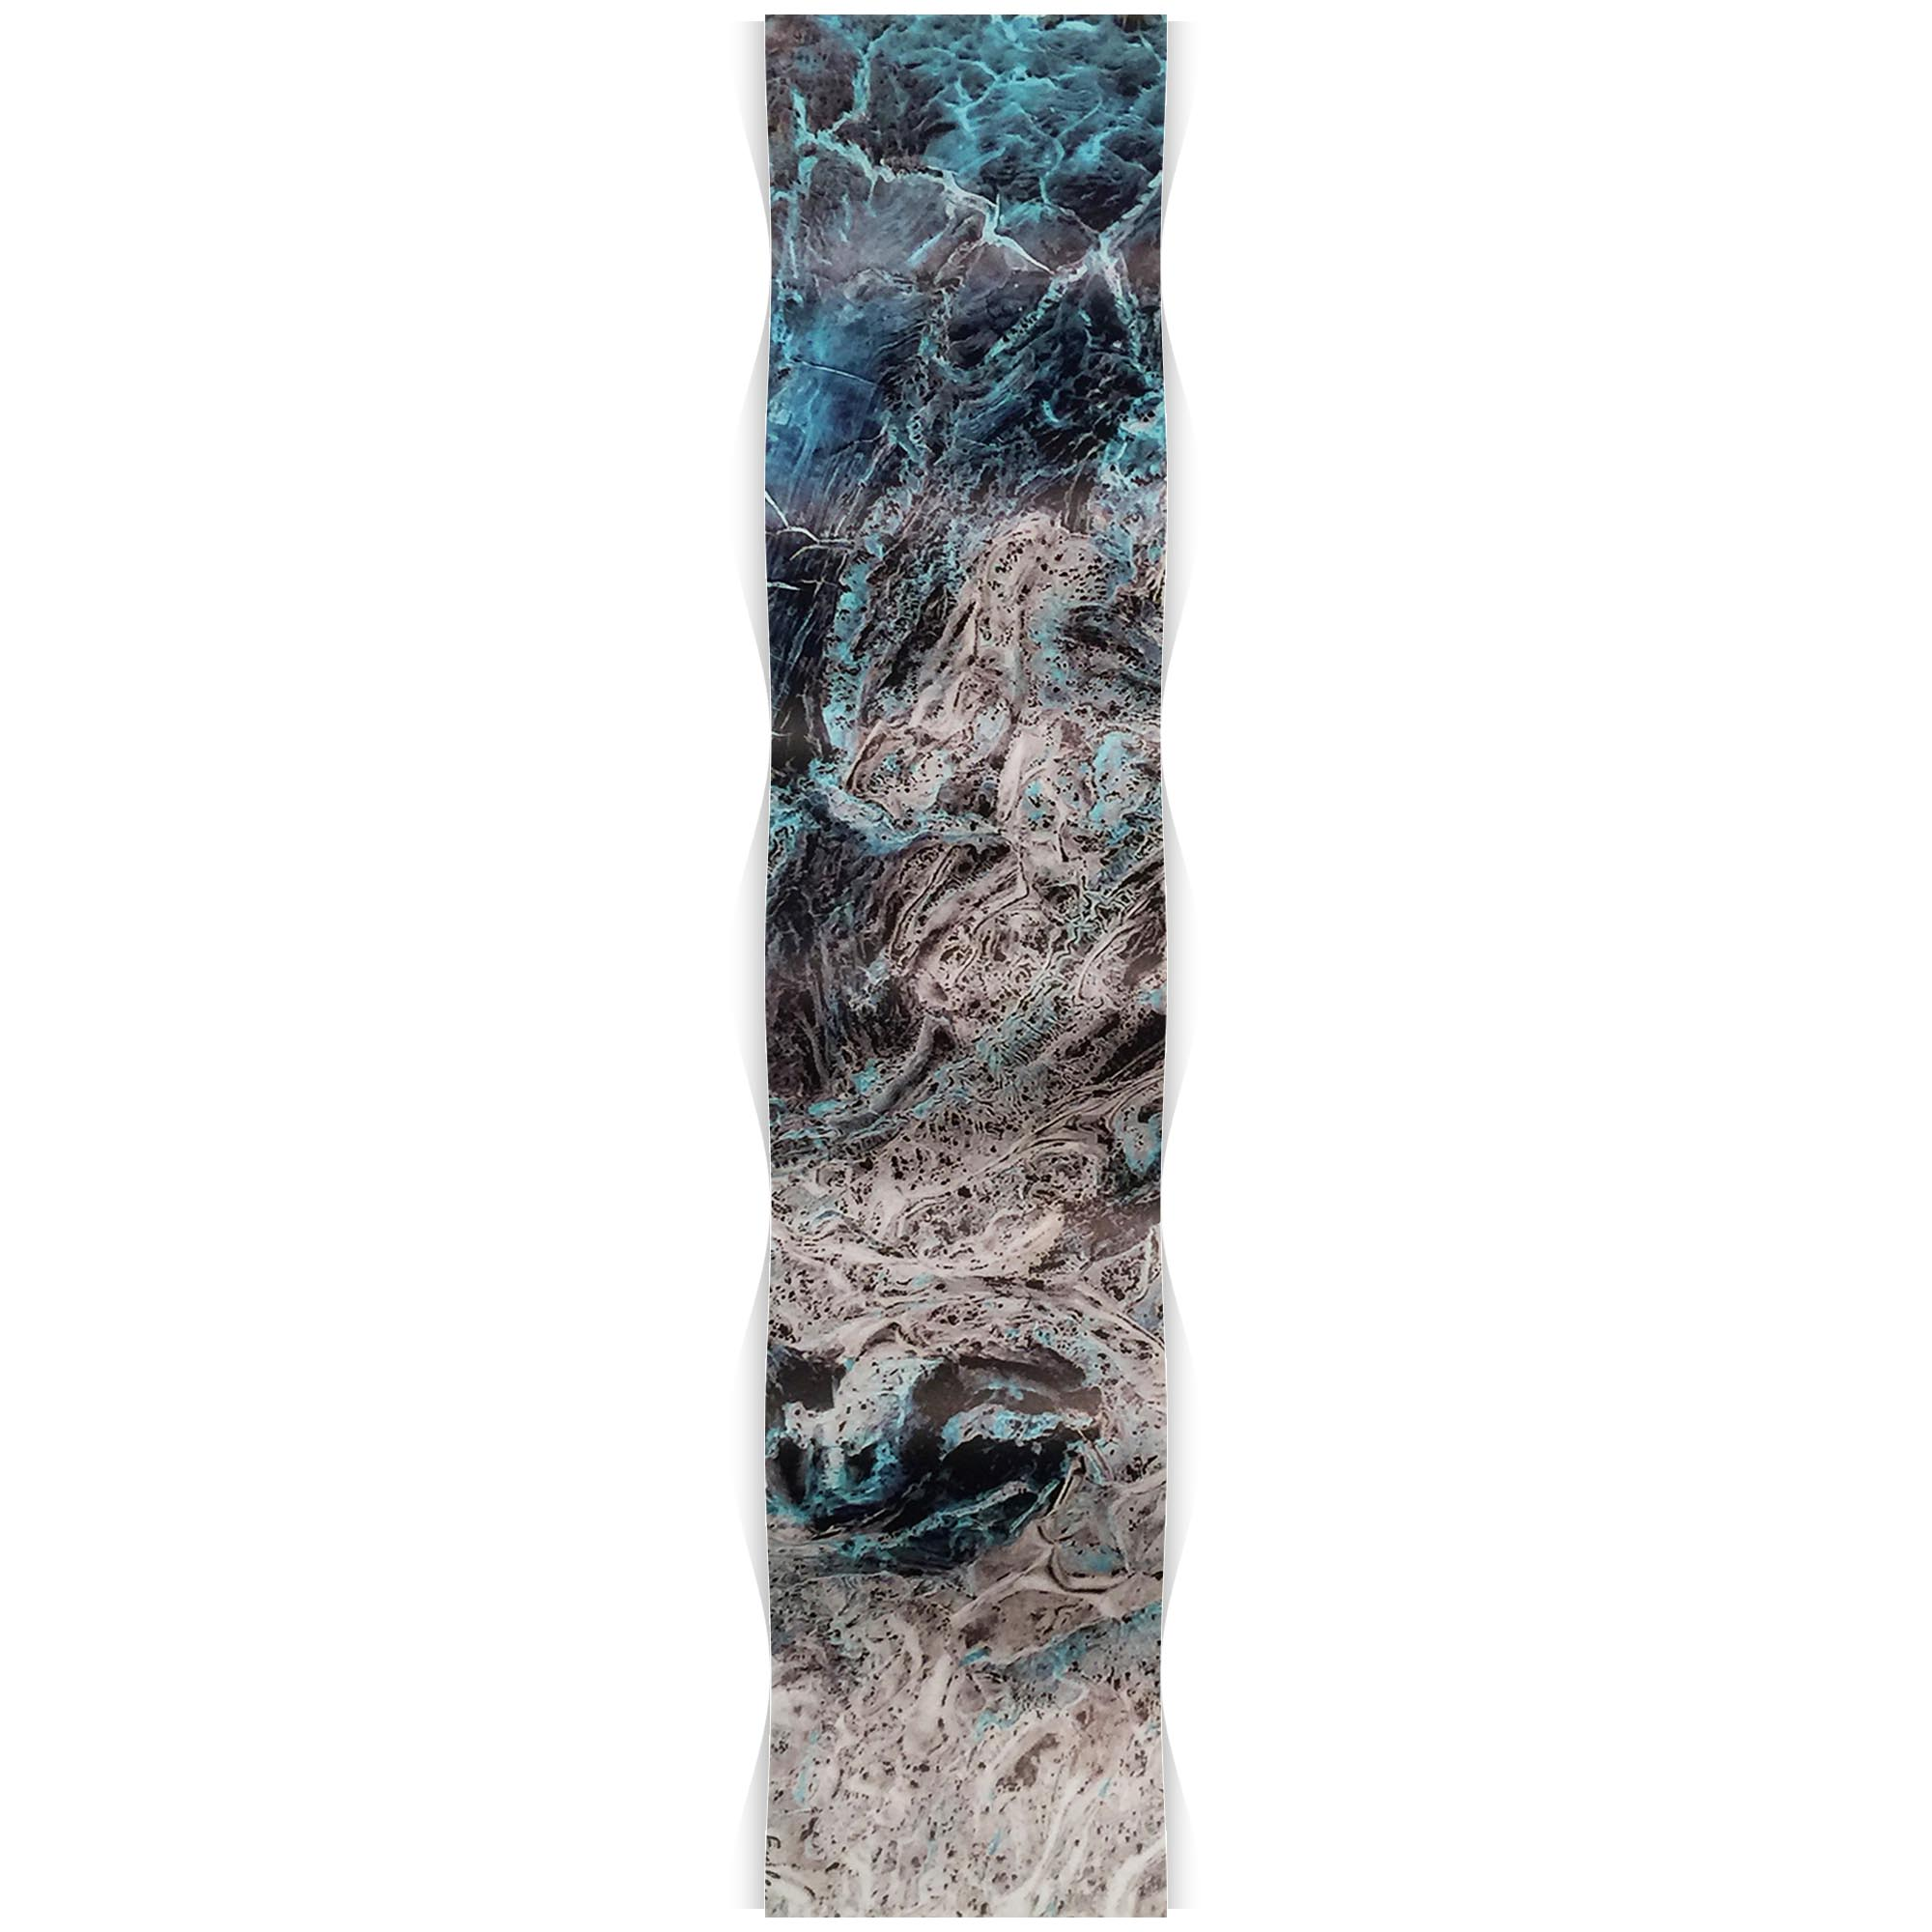 Storm Turquoise Wave 9.5x44in. Metal Eclectic Decor - Image 2